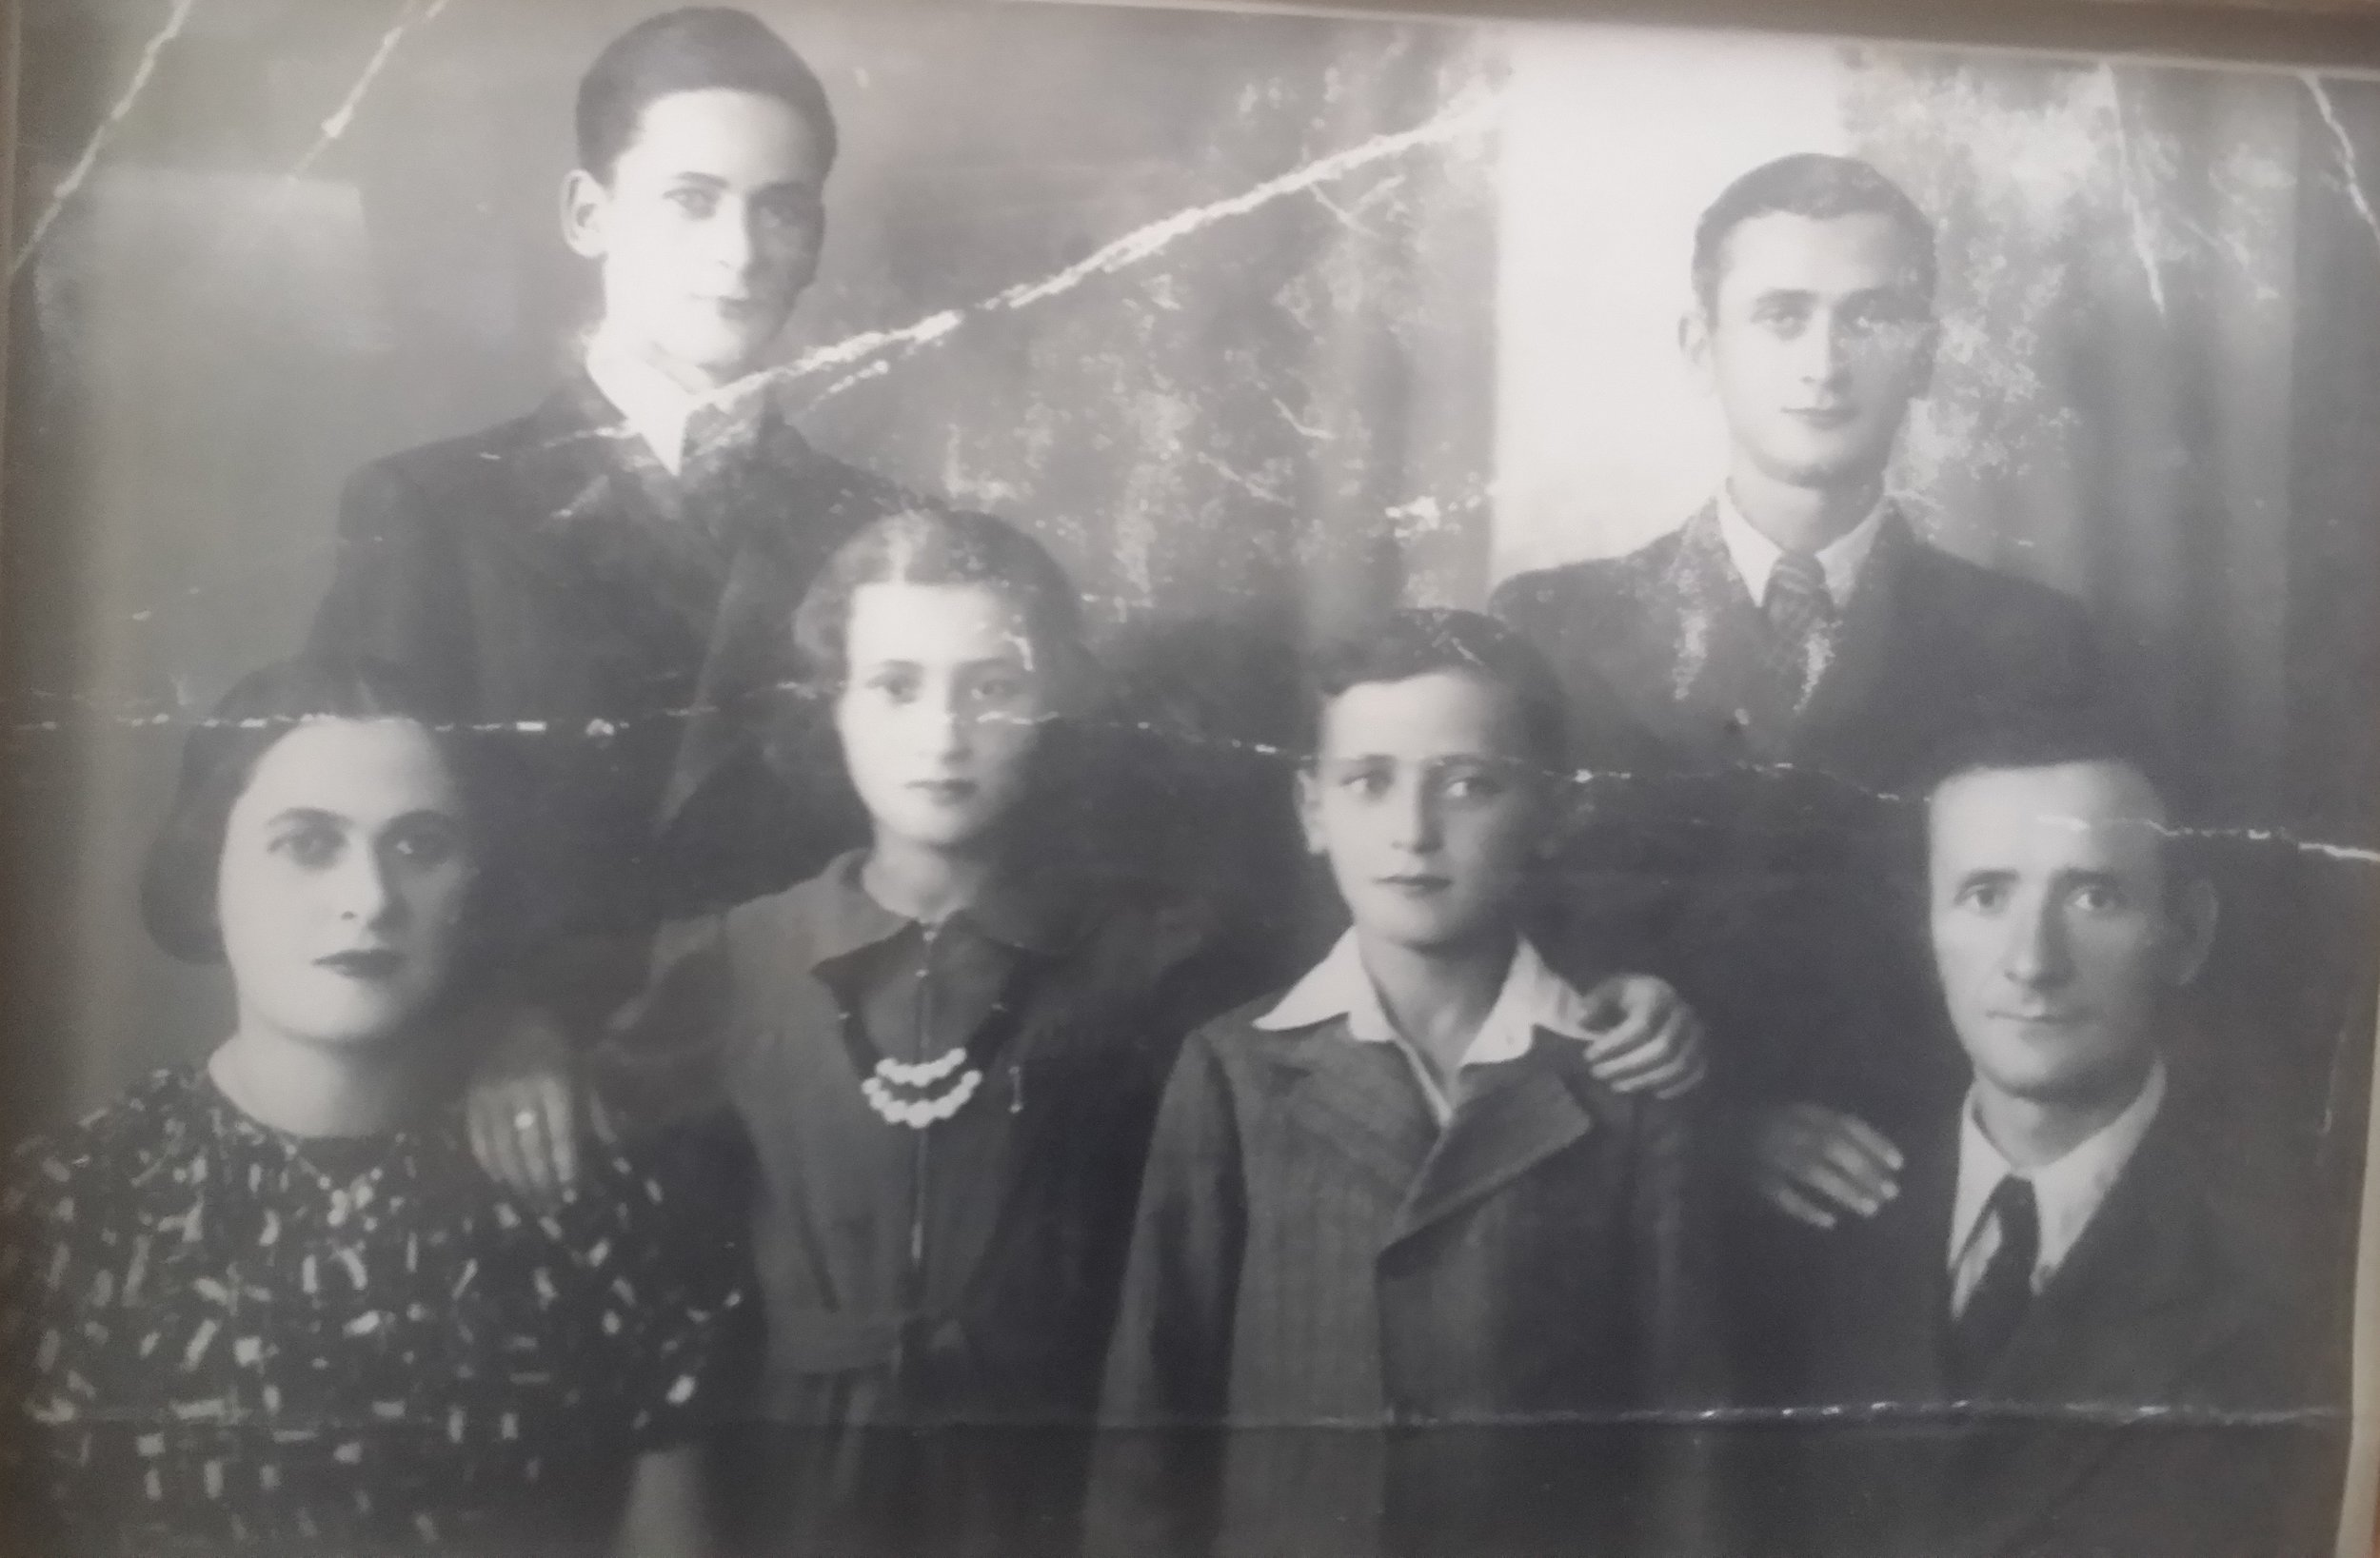 David Kestenberg is the young boy in the front row. He was photographed with his family before the war. He was the only one to survive. Photo: Cindy Kaplan.